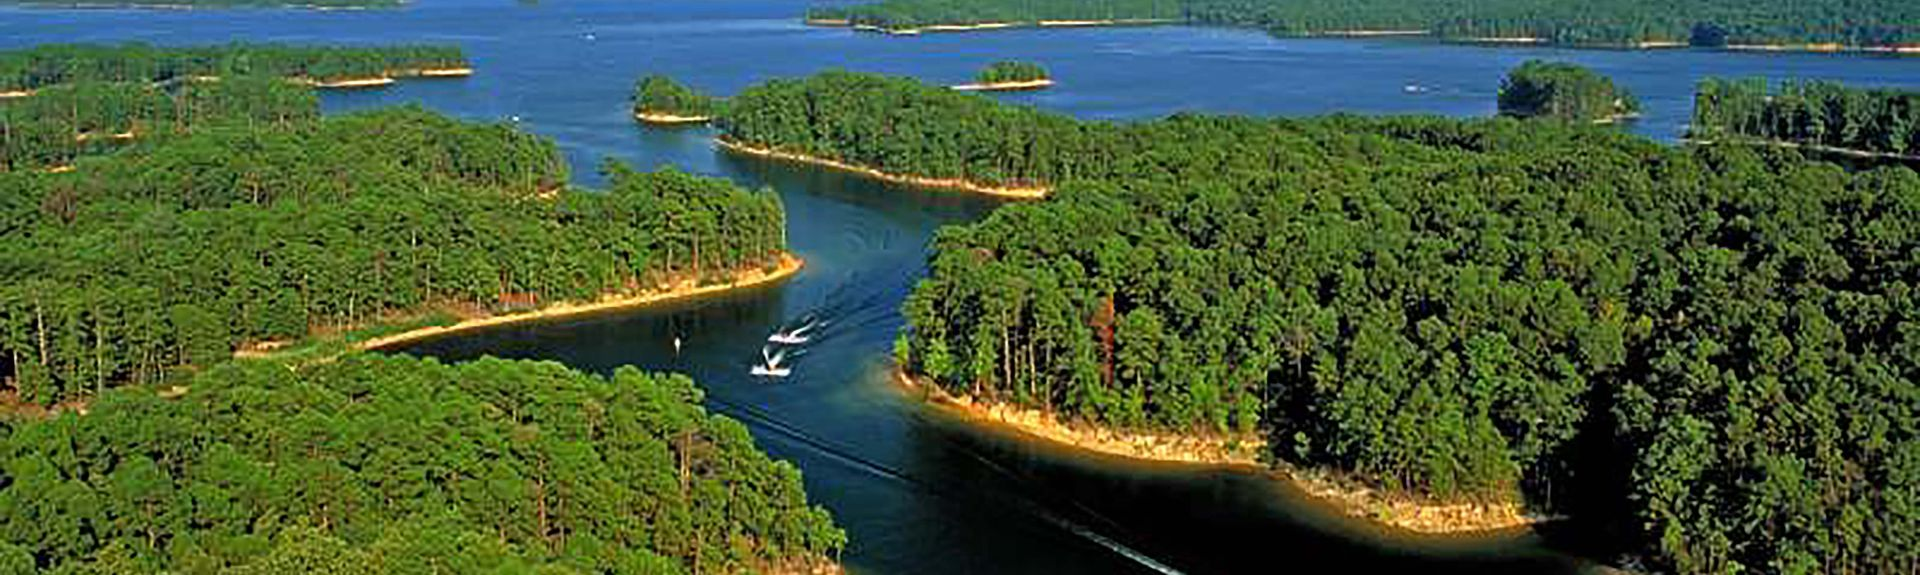 Lake Hamilton and Lake Catherine, Jessieville, Arkansas, États-Unis d'Amérique